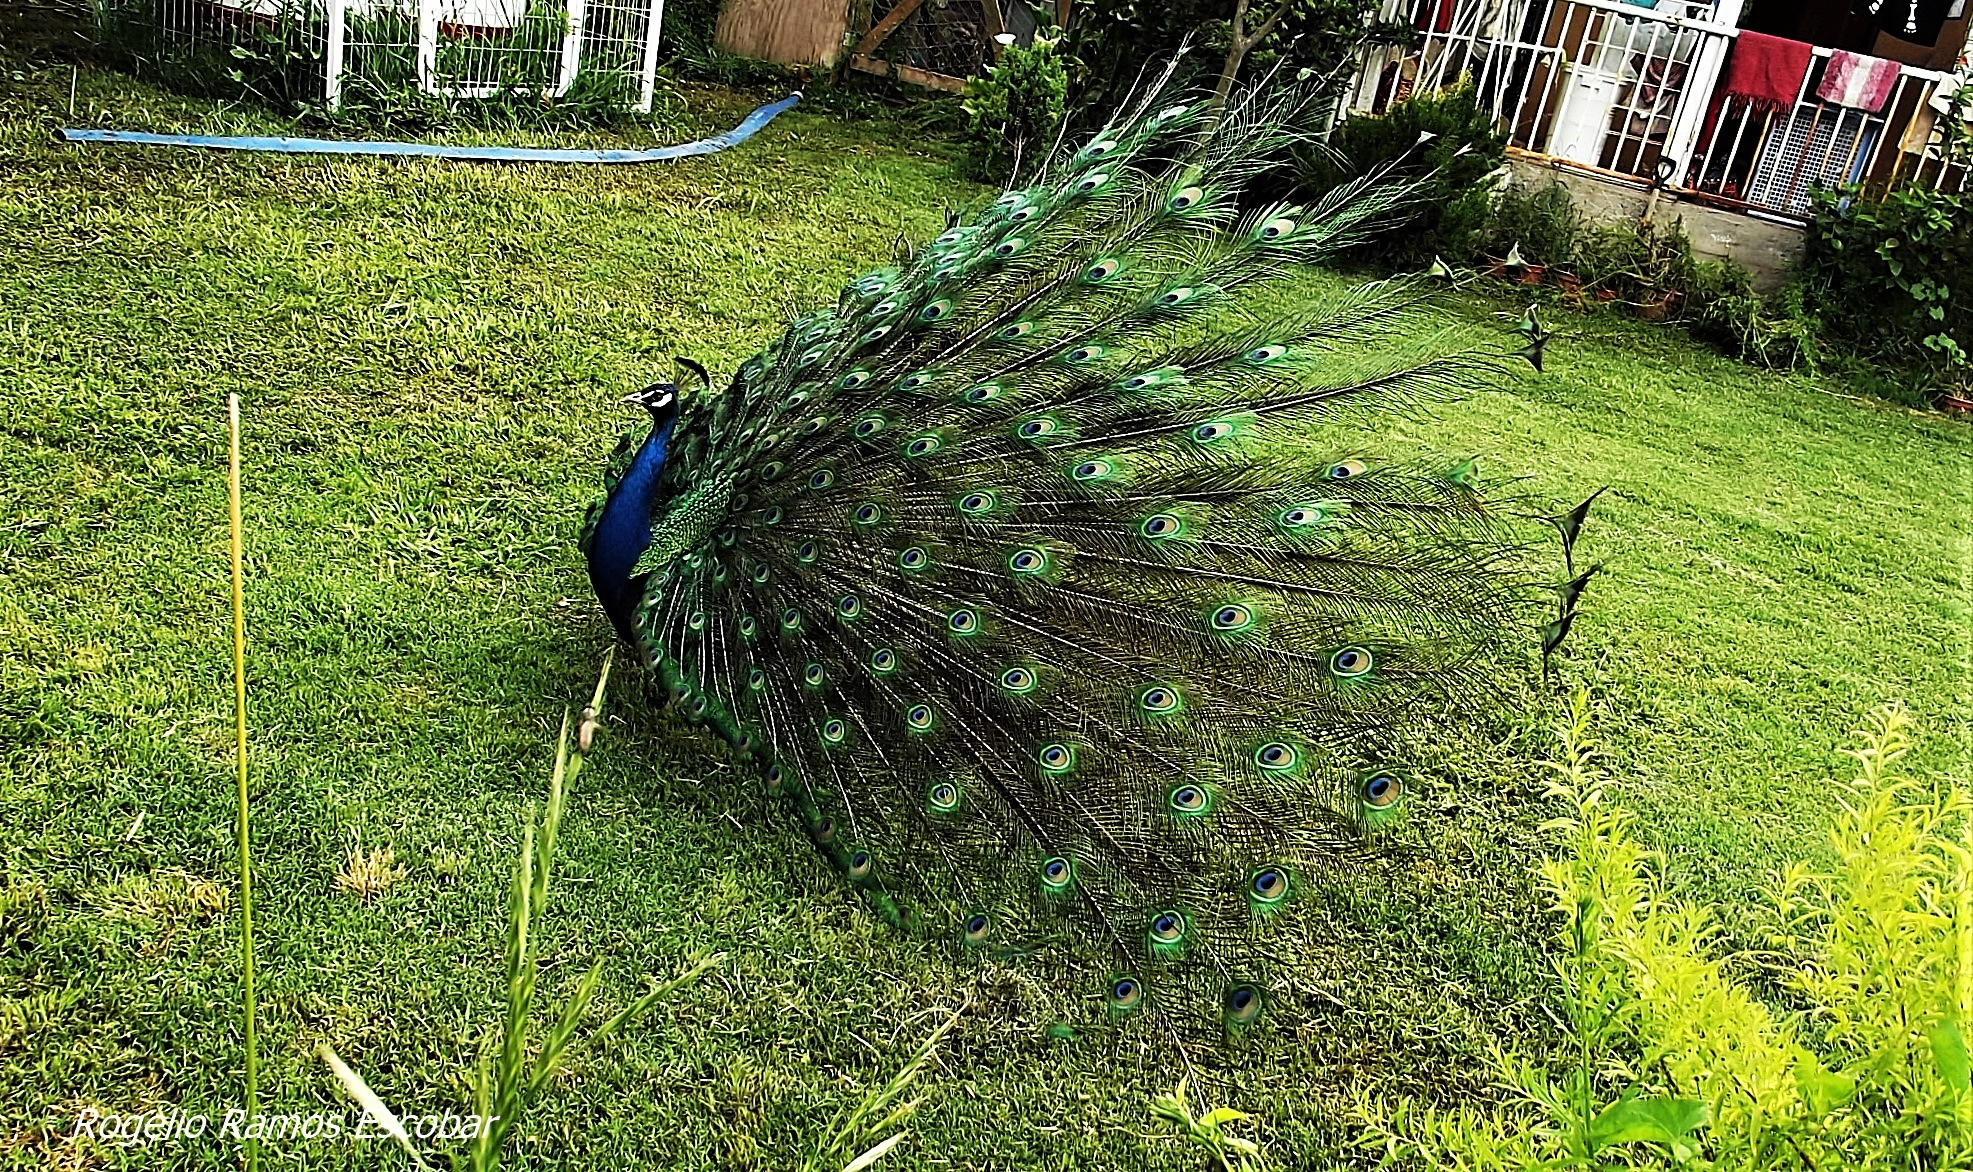 Pavo real by Rogelio Ramos Escobar